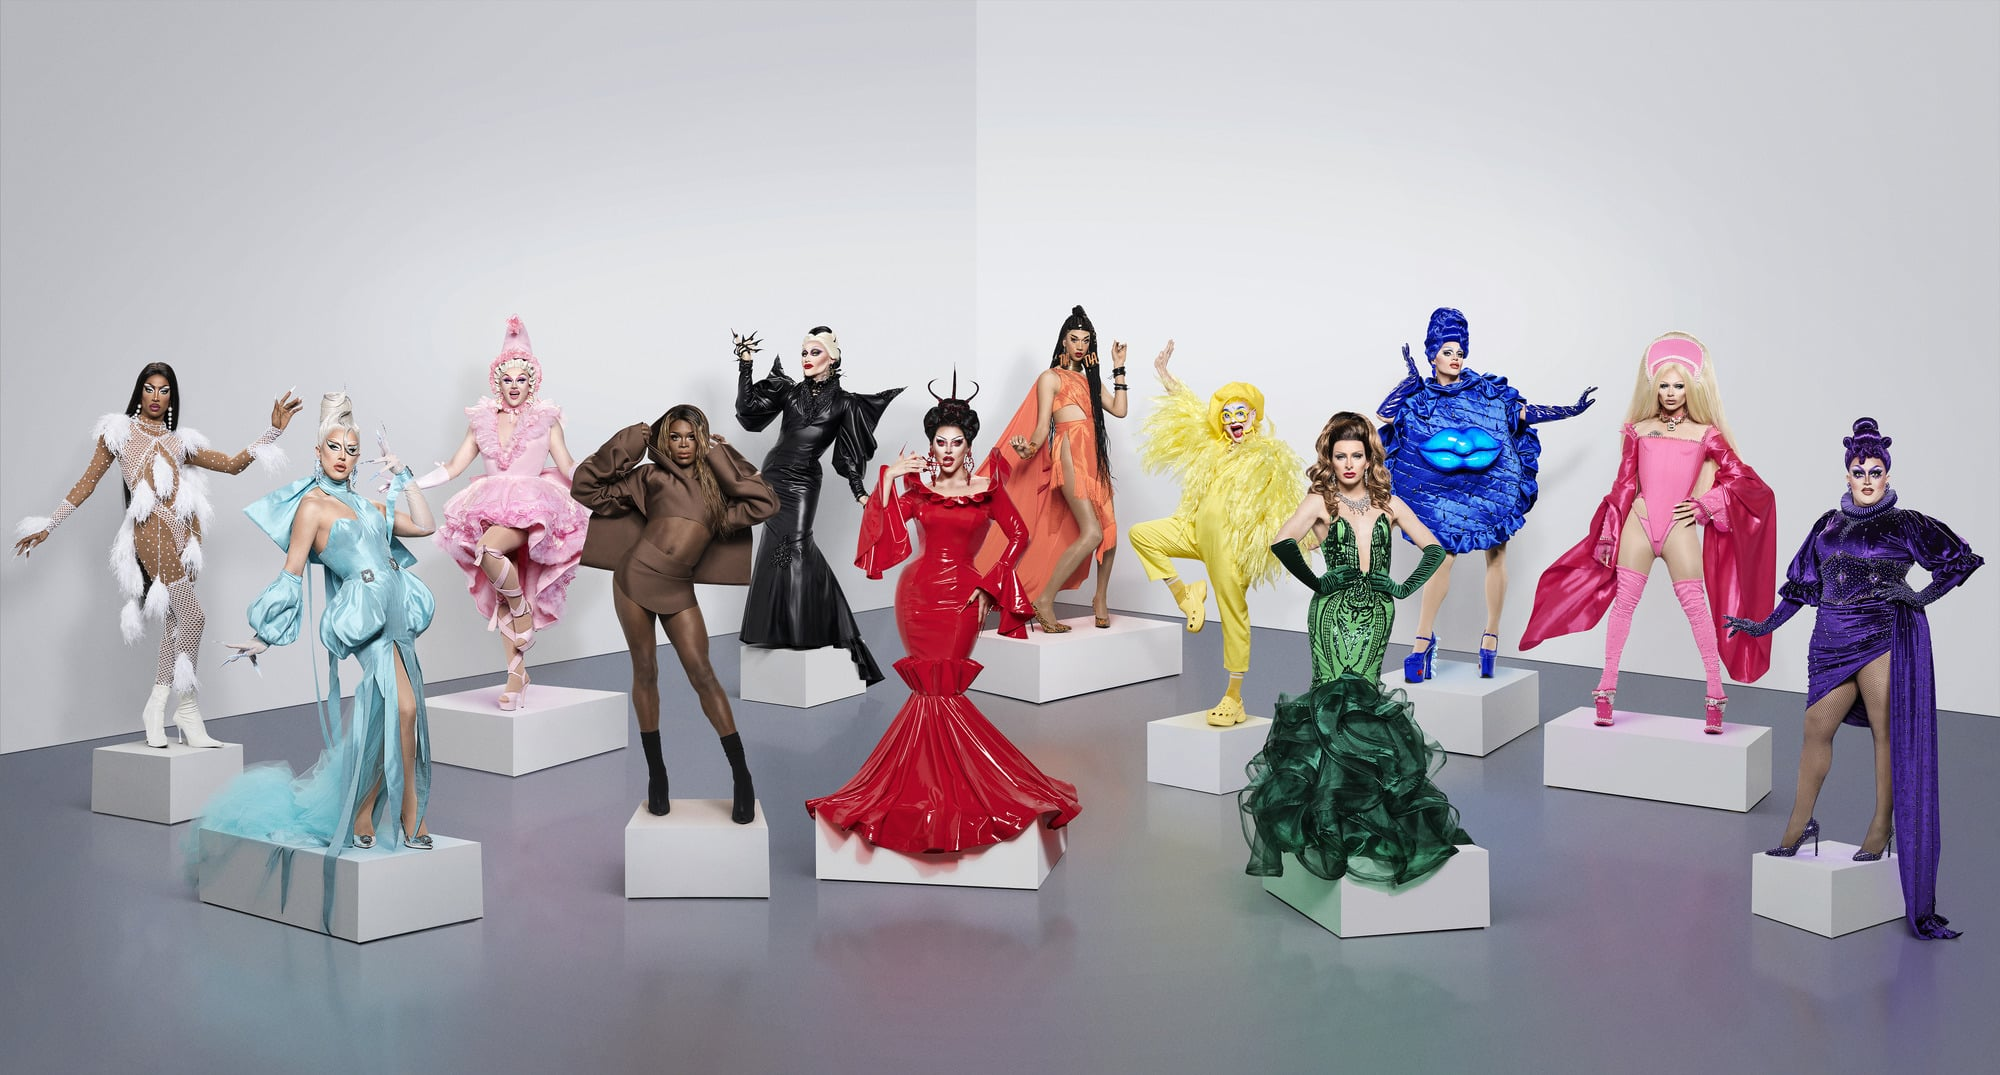 WARNING: Embargoed for publication until 09:00:00 on 16/12/2020 - Programme Name: RuPaul's Drag Race UK series 2 - TX: n/a - Episode: RuPaul's Drag Race UK series 2 generics (No. n/a) - Picture Shows:  Tayce, A'Whora, Ellie Diamond, Asttina Mandella, Joe Black, Cherry Valentine, Tia Kofi, Ginny Lemon, Veronica Green, Sister Sister, Bimini Bon Boulash, Lawrence Chaney - (C) World of Wonder - Photographer: Ray Burmiston